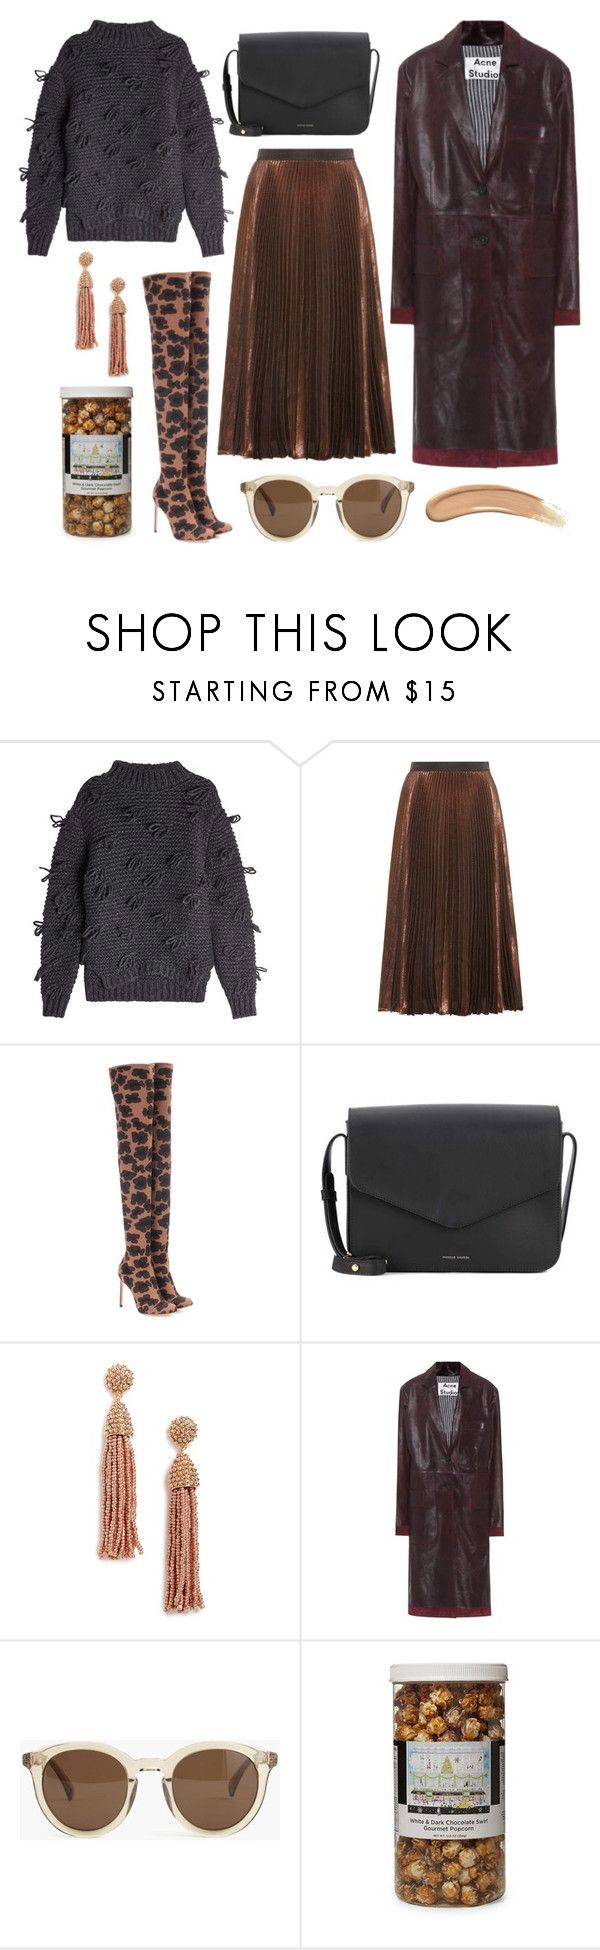 """""""OTK Boots"""" by cherieaustin ❤ liked on Polyvore featuring Simone Rocha, Christopher Kane, Francesco Russo, Mansur Gavriel, BaubleBar, Acne Studios, J.Crew, The Hampton Popcorn Company and Gucci"""